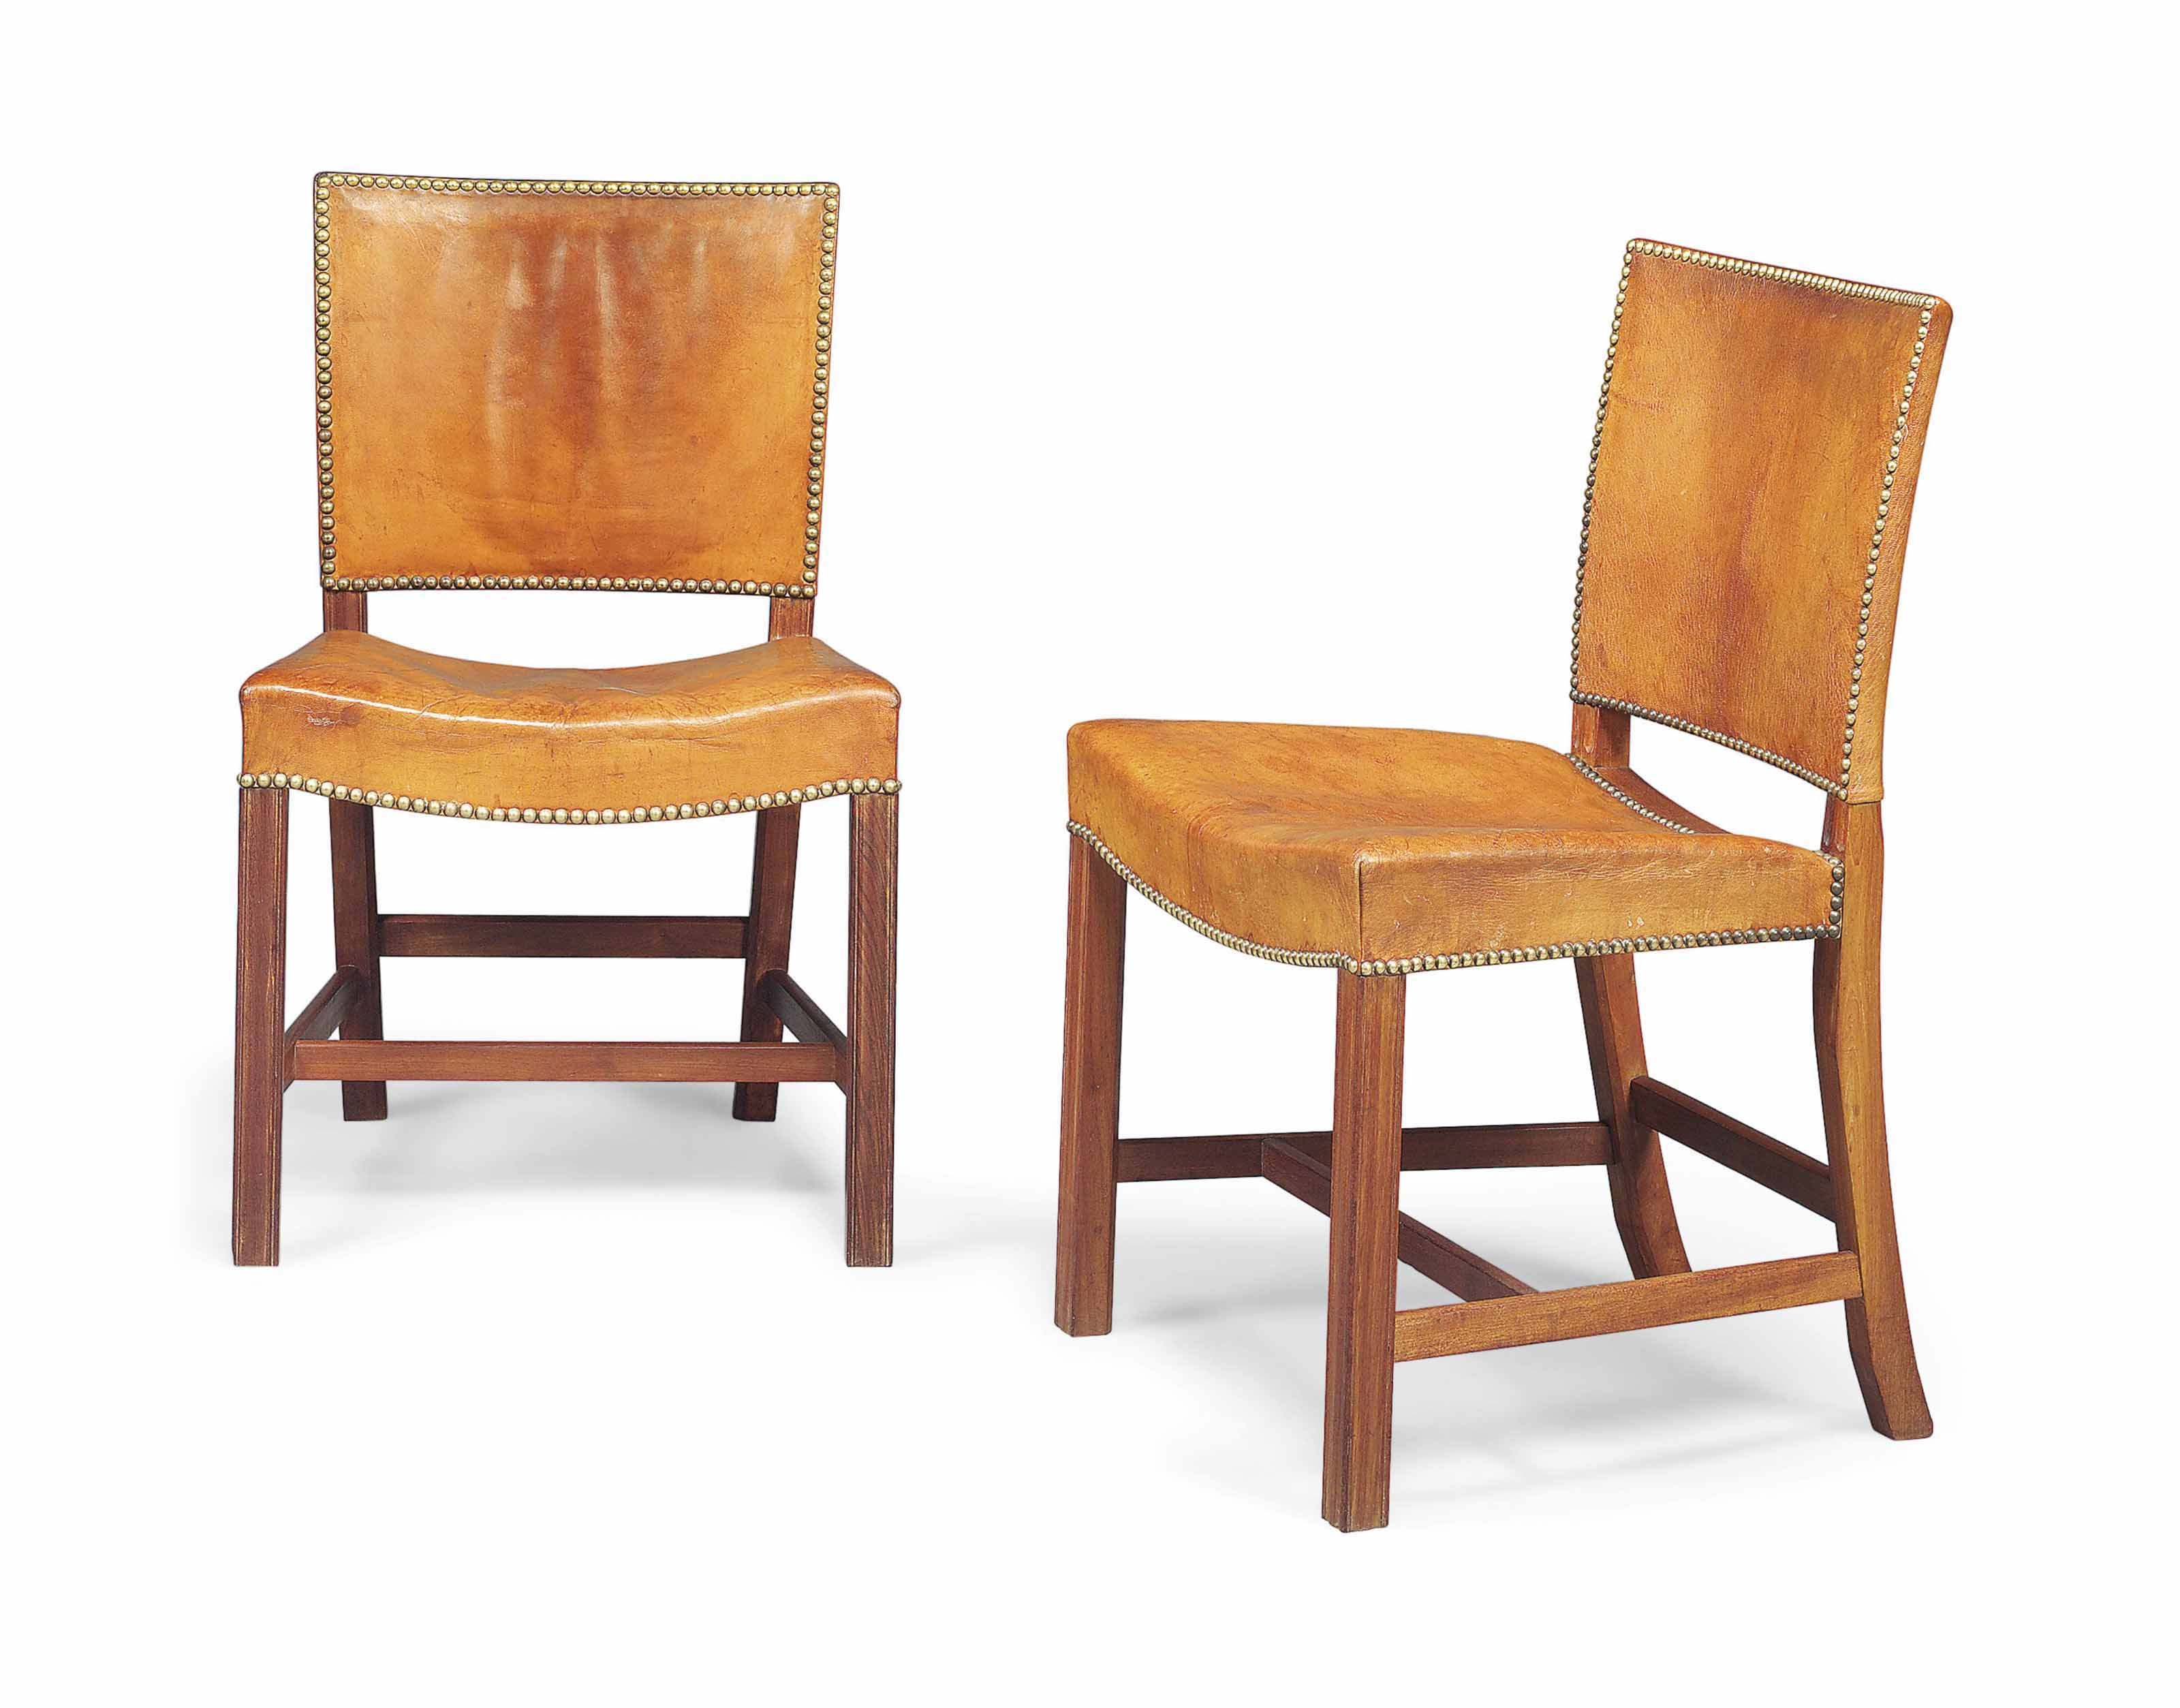 A PAIR OF KAARE KLINT (1888-1954) CUBAN MAHOGANY AND LEATHER UPHOLSTERED 'RED CHAIRS'